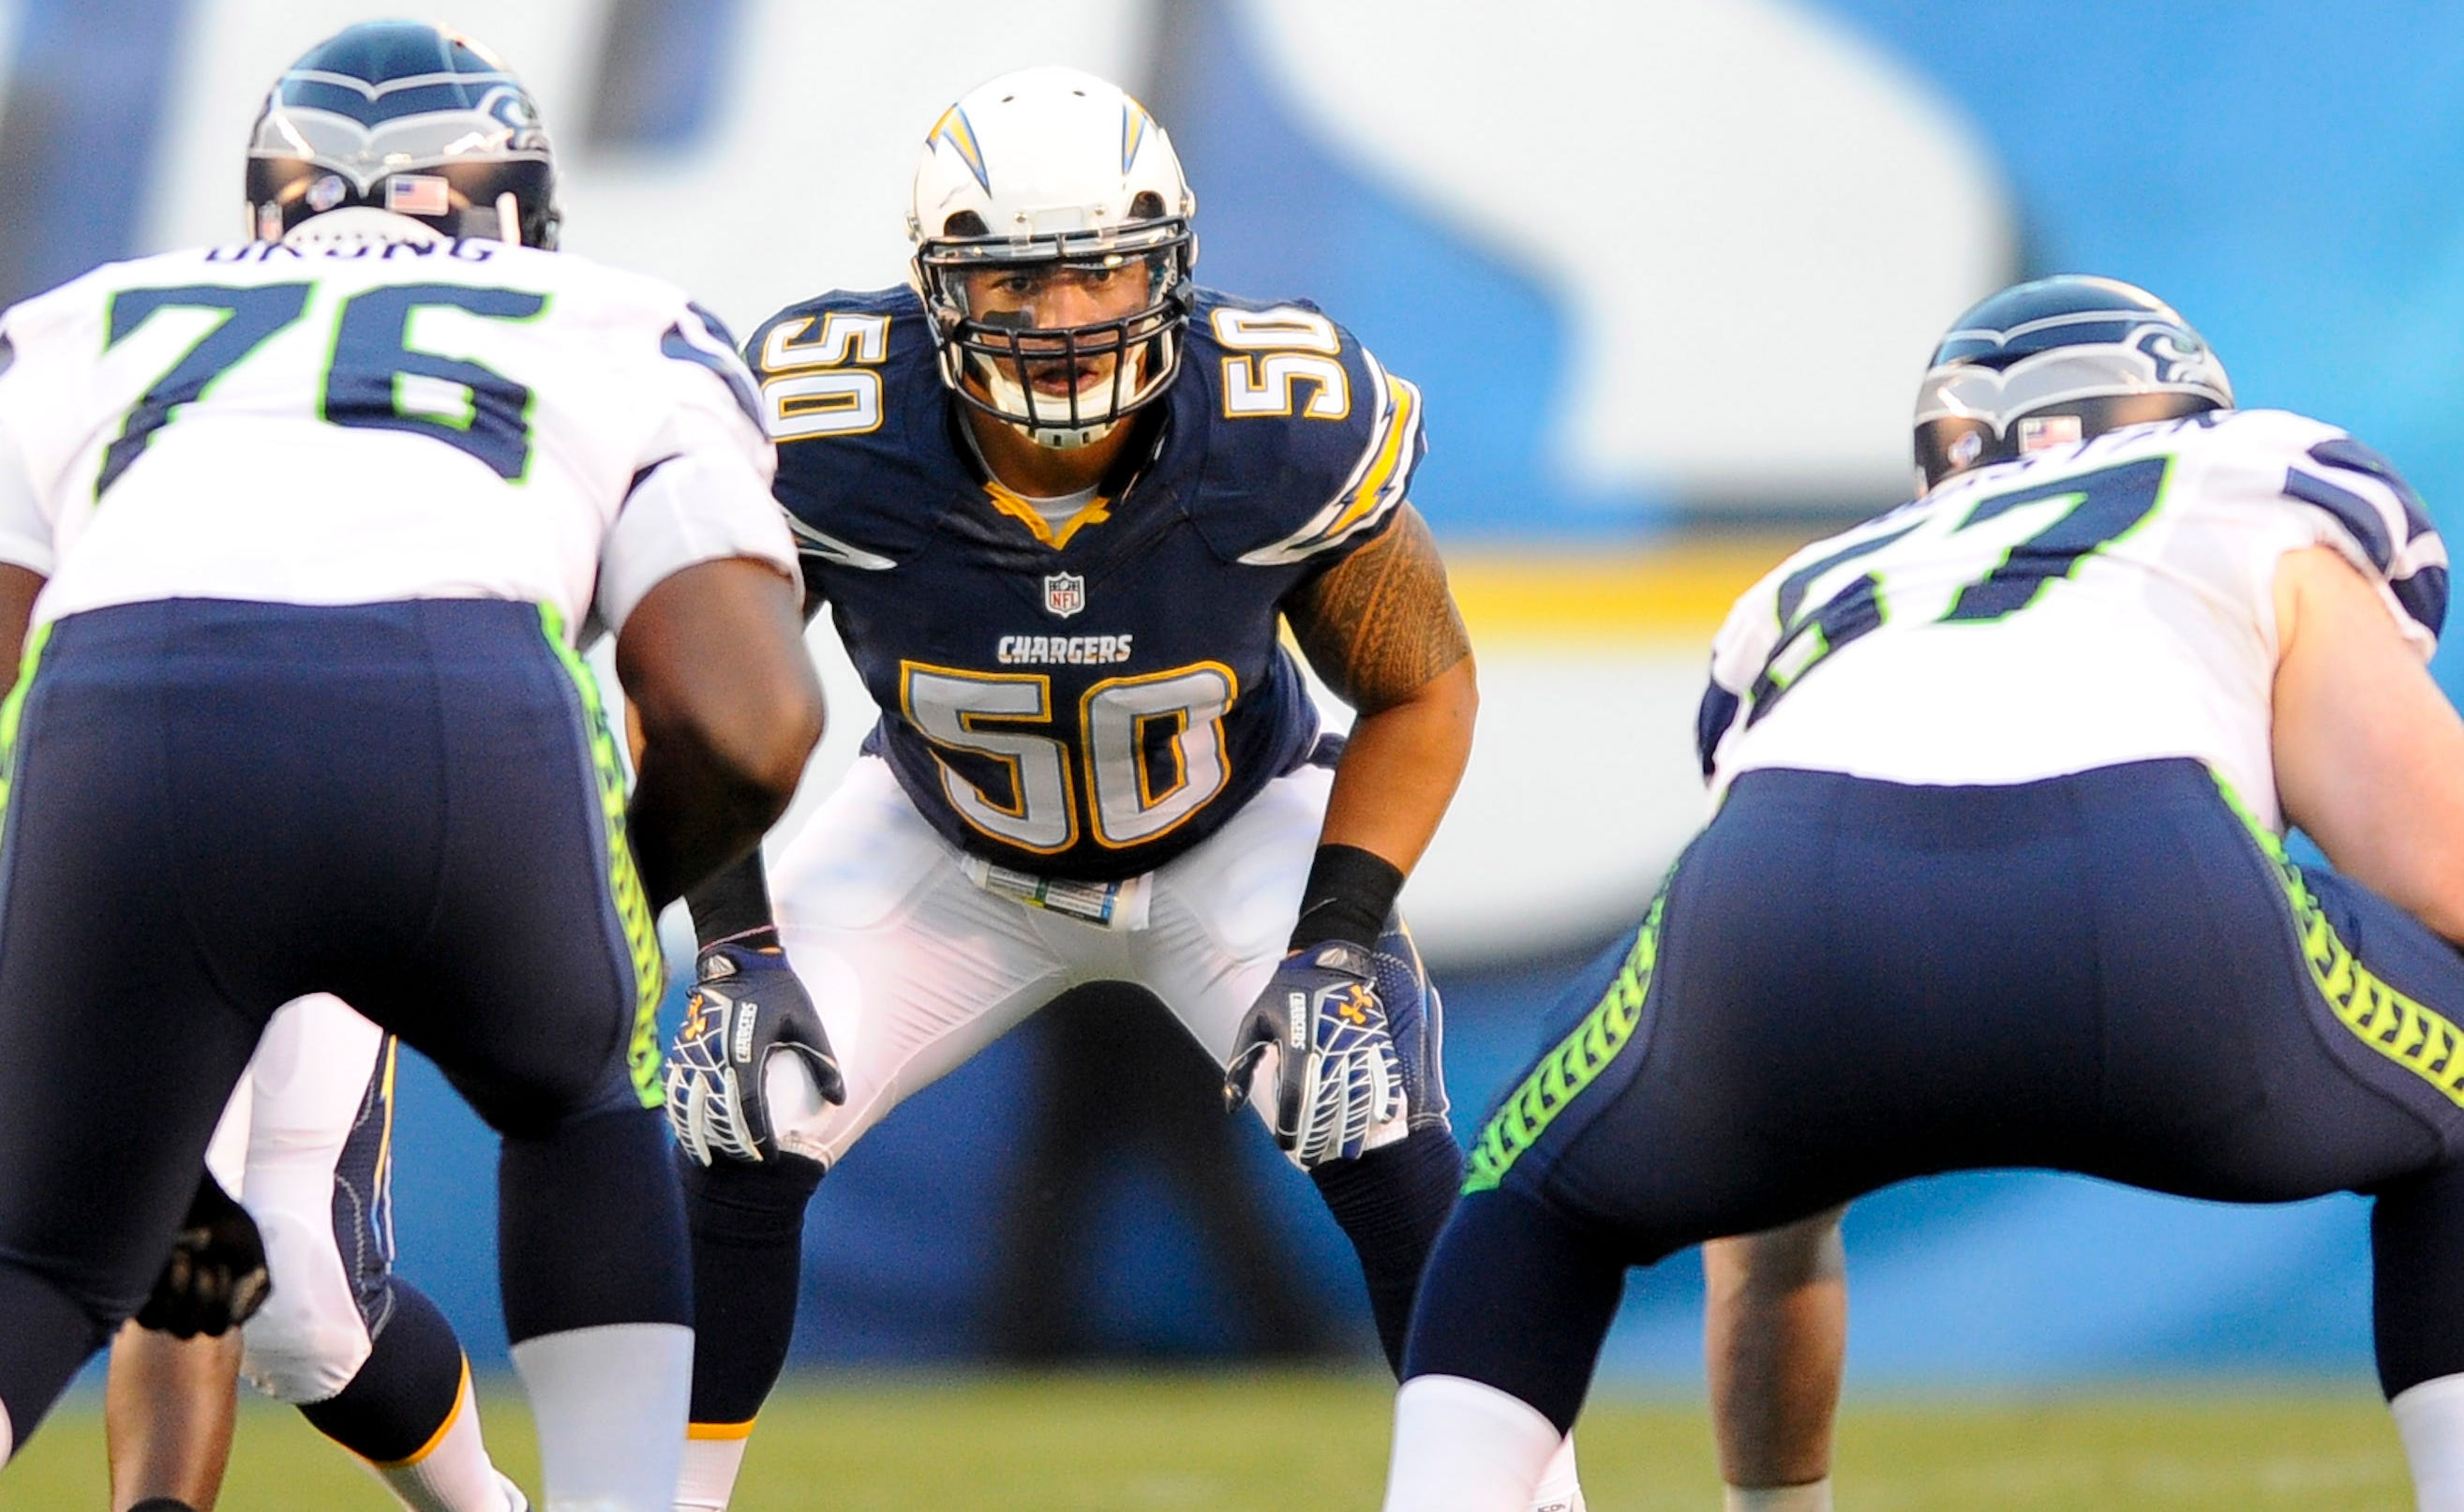 San Diego Chargers linebacker Manti Te'o (50) waits for the snap during the first half against the Seattle Seahawks at Qualcomm Stadium.